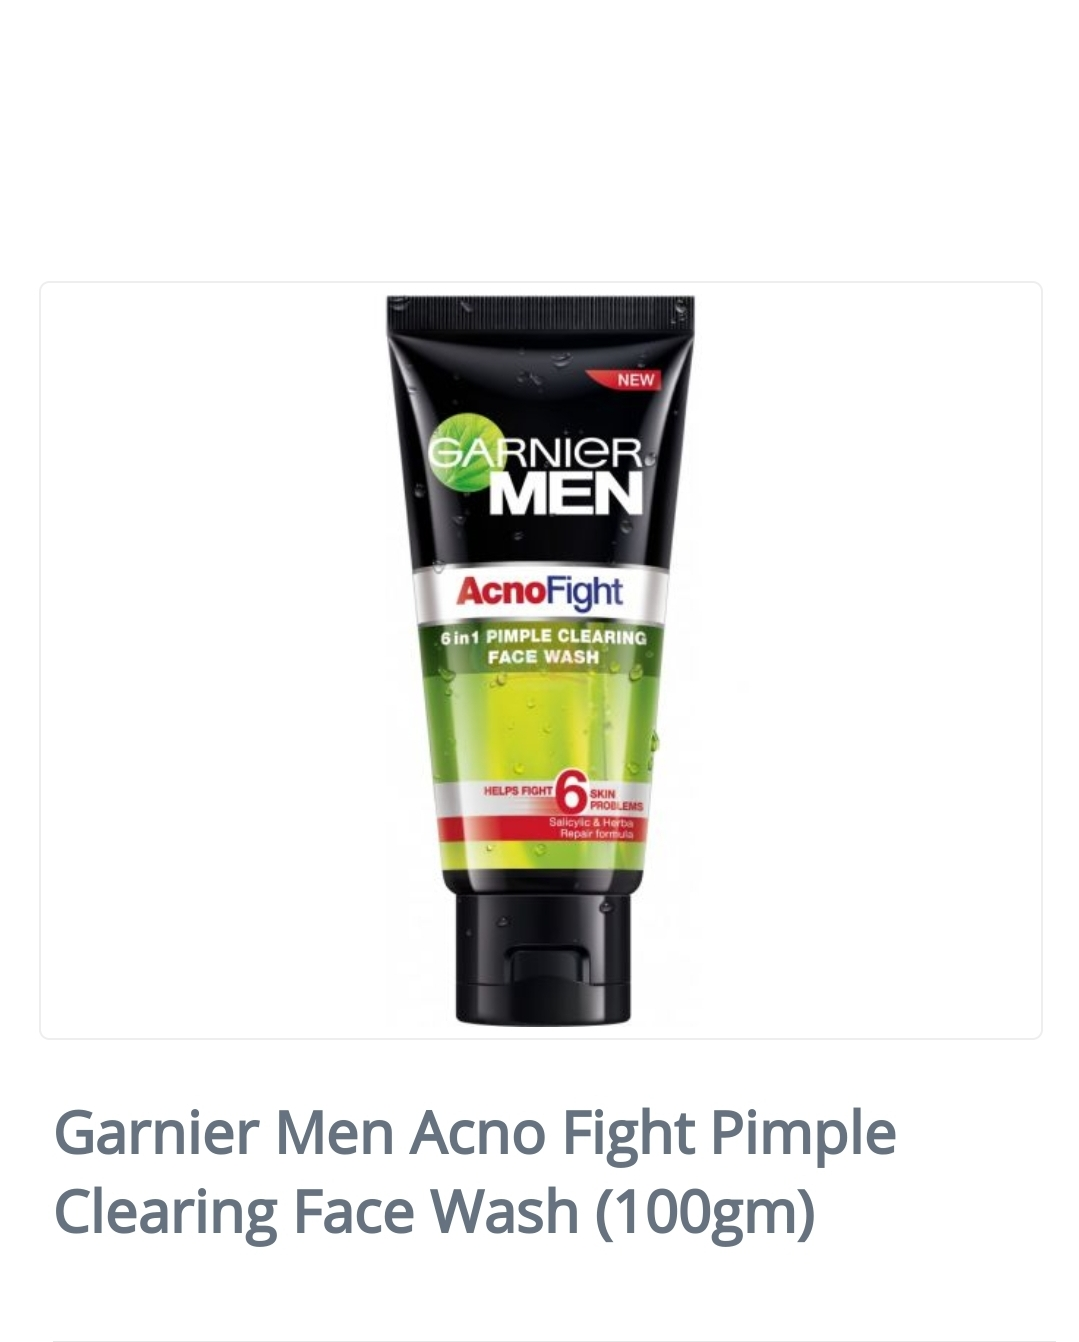 Garnier Men Acno Fight Pimple Clearing Face Wash (100gm)  Brand:...